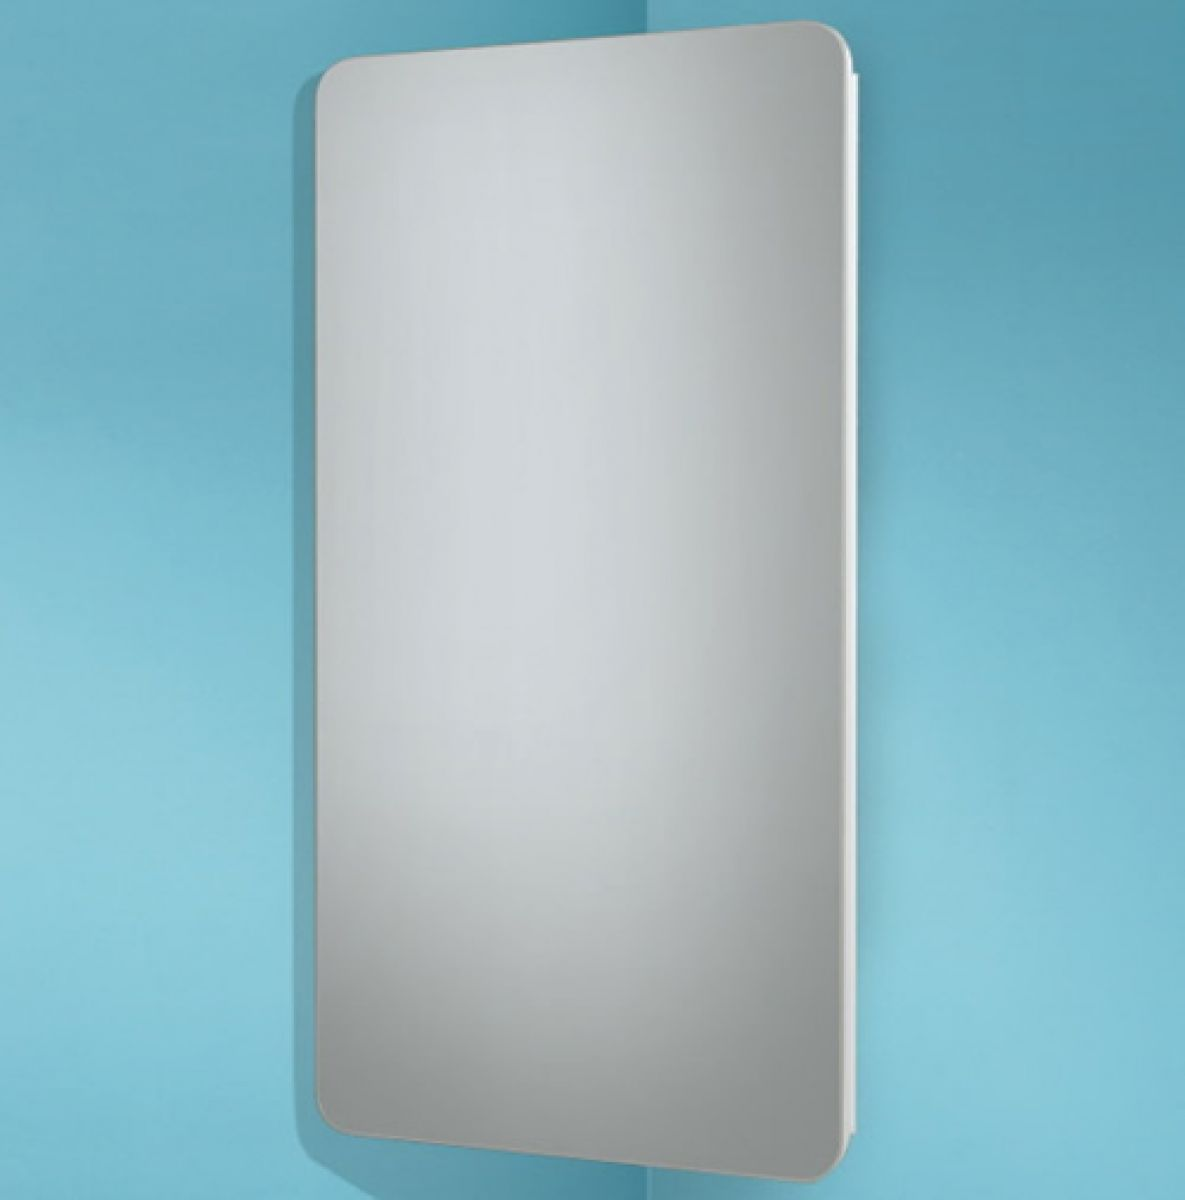 HIB Turin Mirrored Corner Bathroom Cabinet